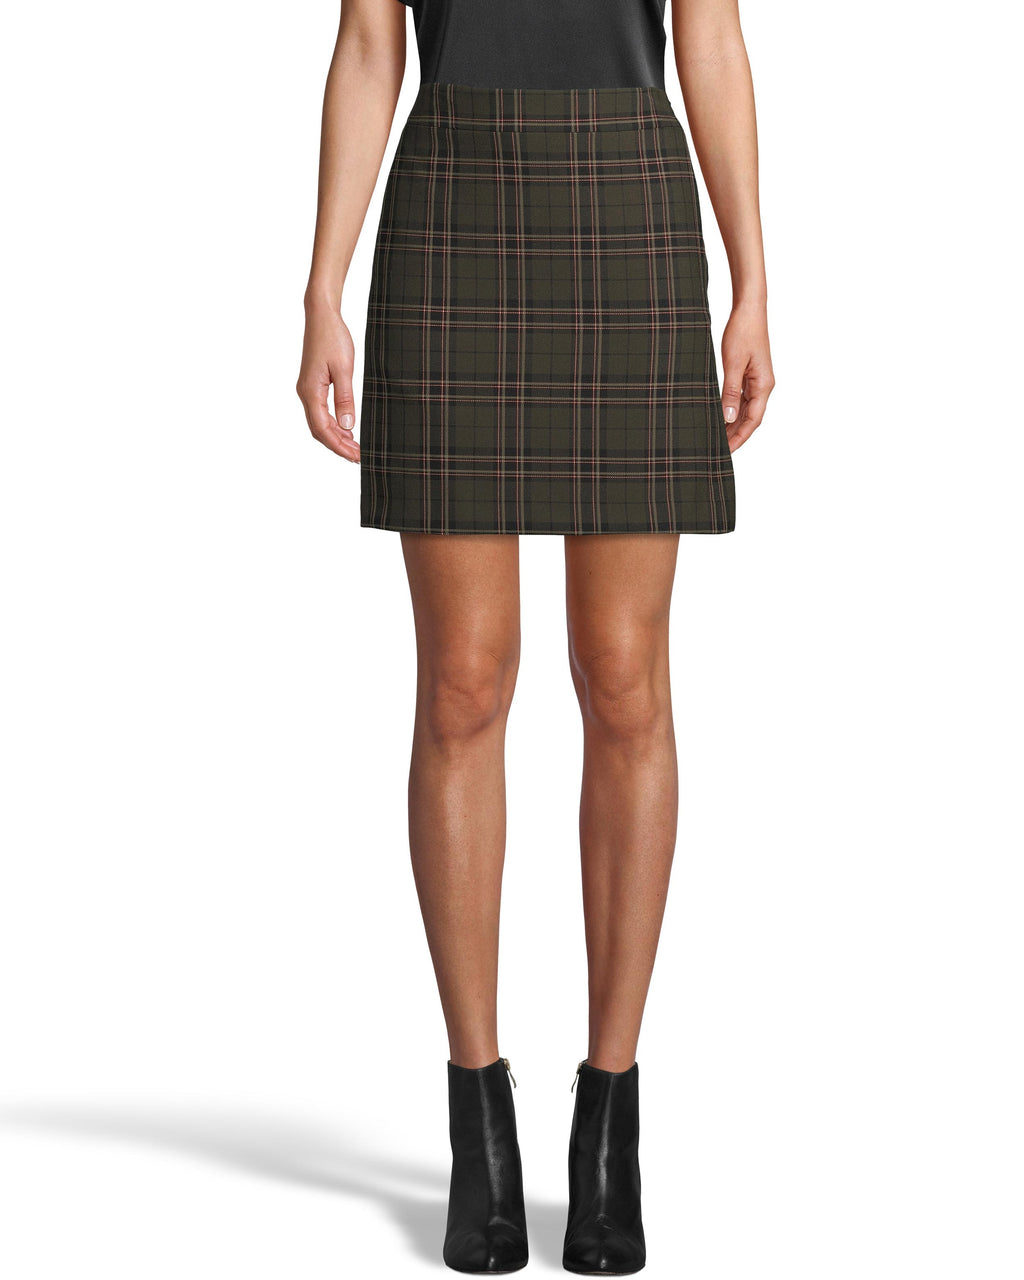 CS18234 - JAGGER PLAID MINI SKIRT - bottoms - skirts - Plaid is a fall neutral. Designed in our new jaggar plaid, this classic silhouette hits a few inches above the knee and features a concealed side zipper. Add 1 line break Stylist tip: Pair with anything from white t-shirts to one of our cashmere sweaters.